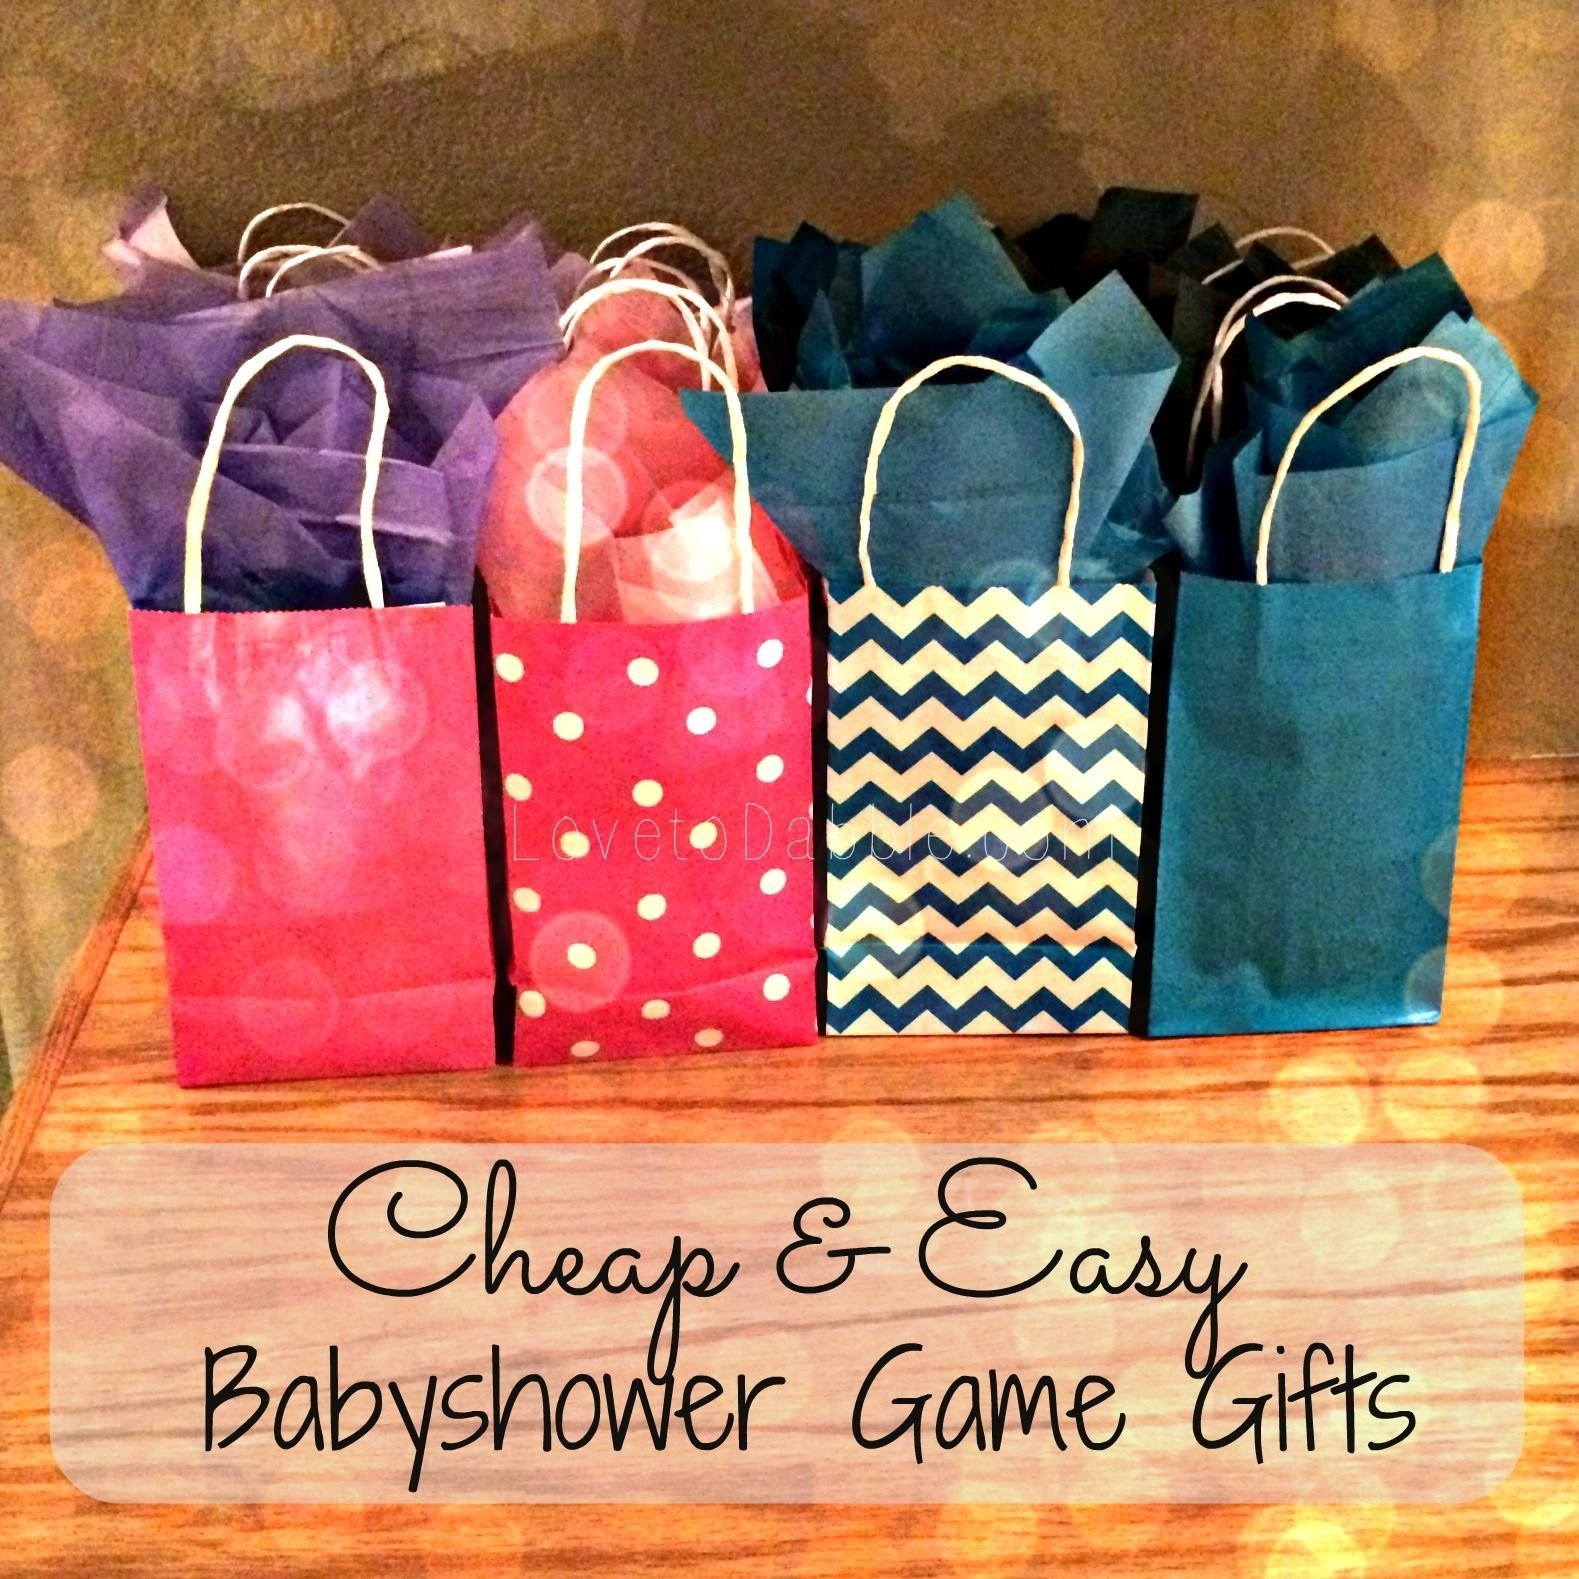 10 Pretty Baby Shower Game Gift Ideas For Guests hot baby shower game prizes for guys and baby shower game prizes for 1 2021